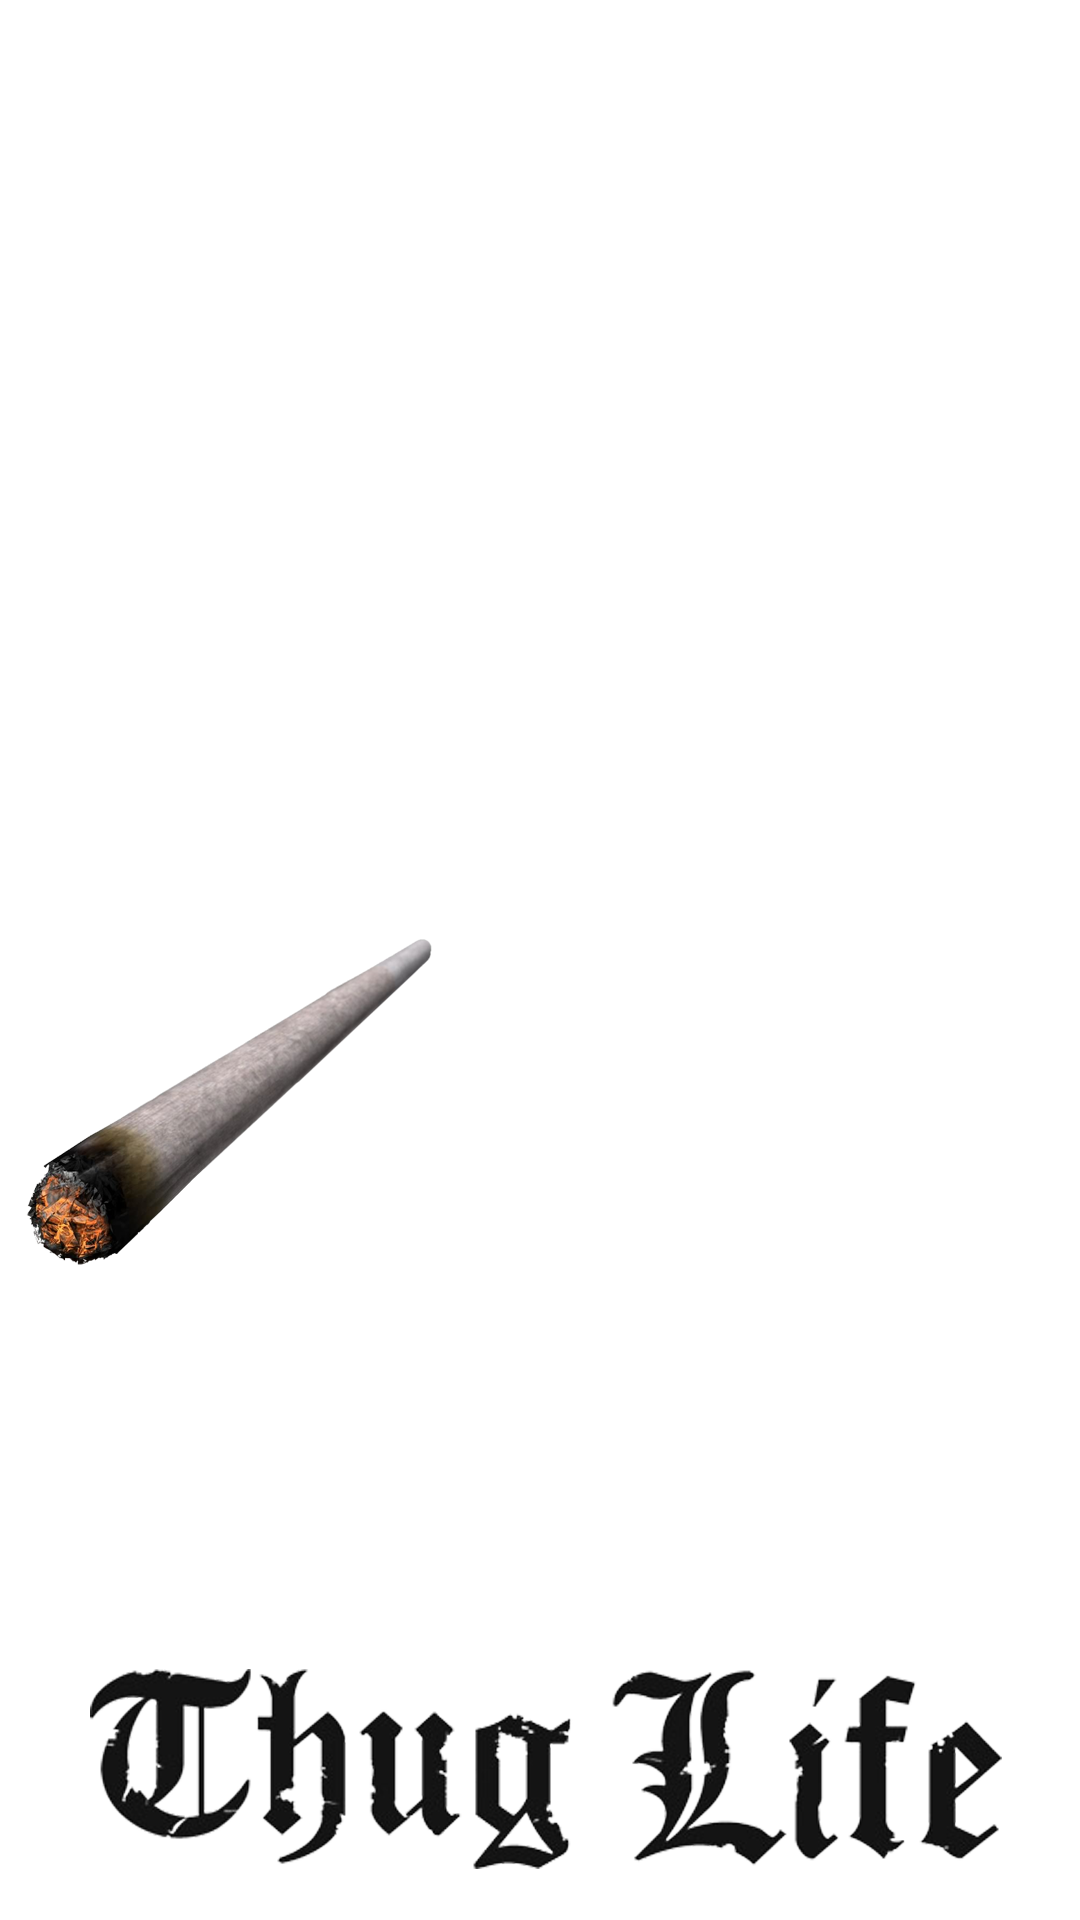 Thug life joint png. Pack created with many